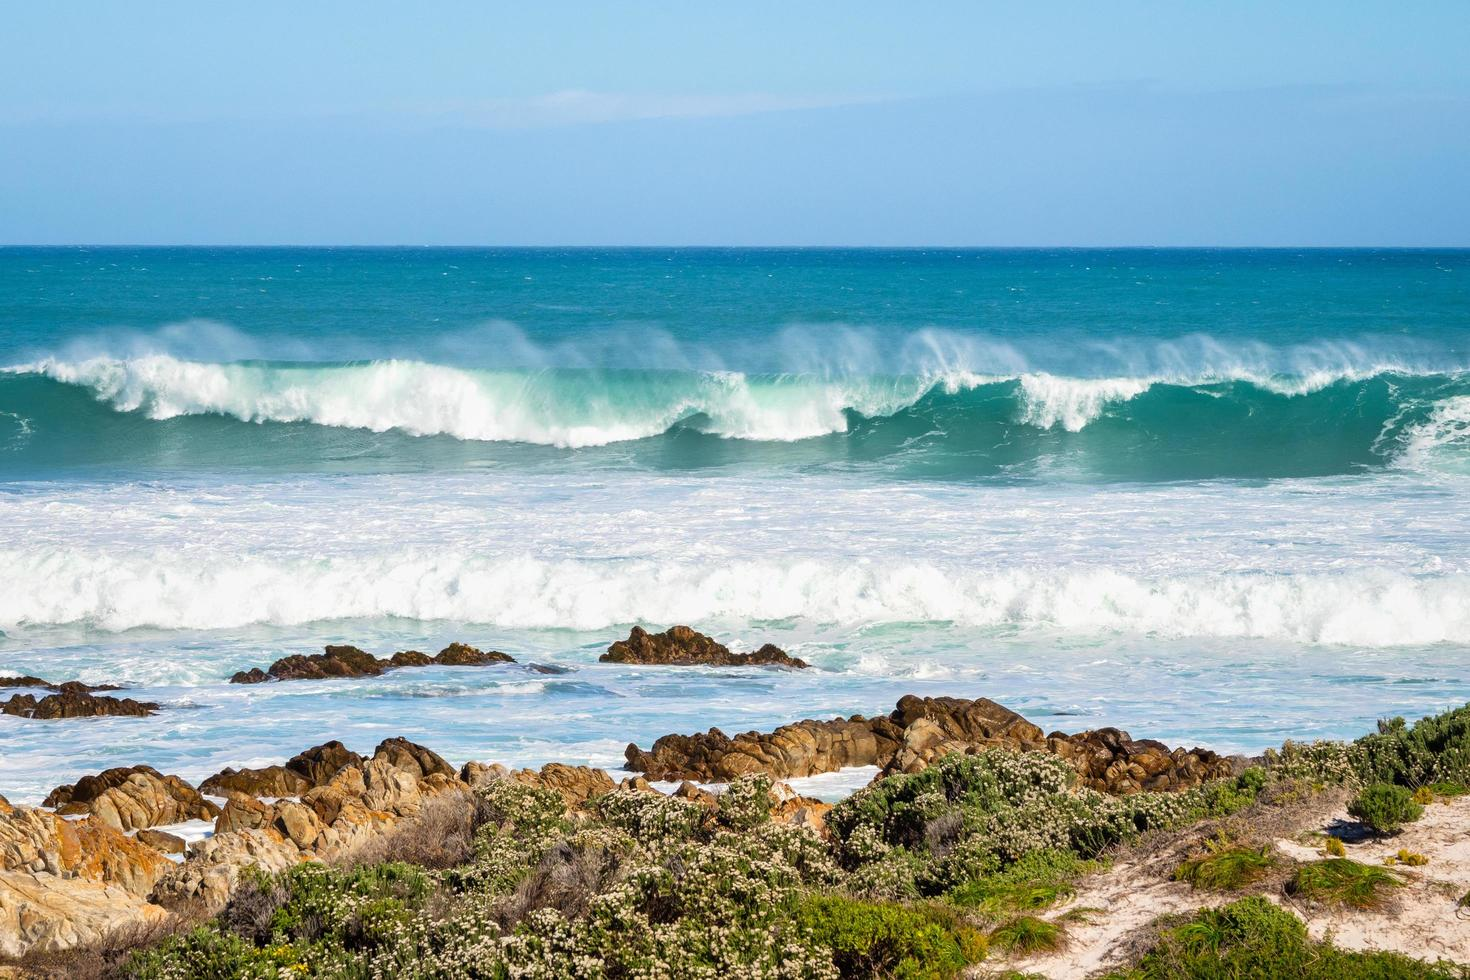 Ocean waves during the day photo